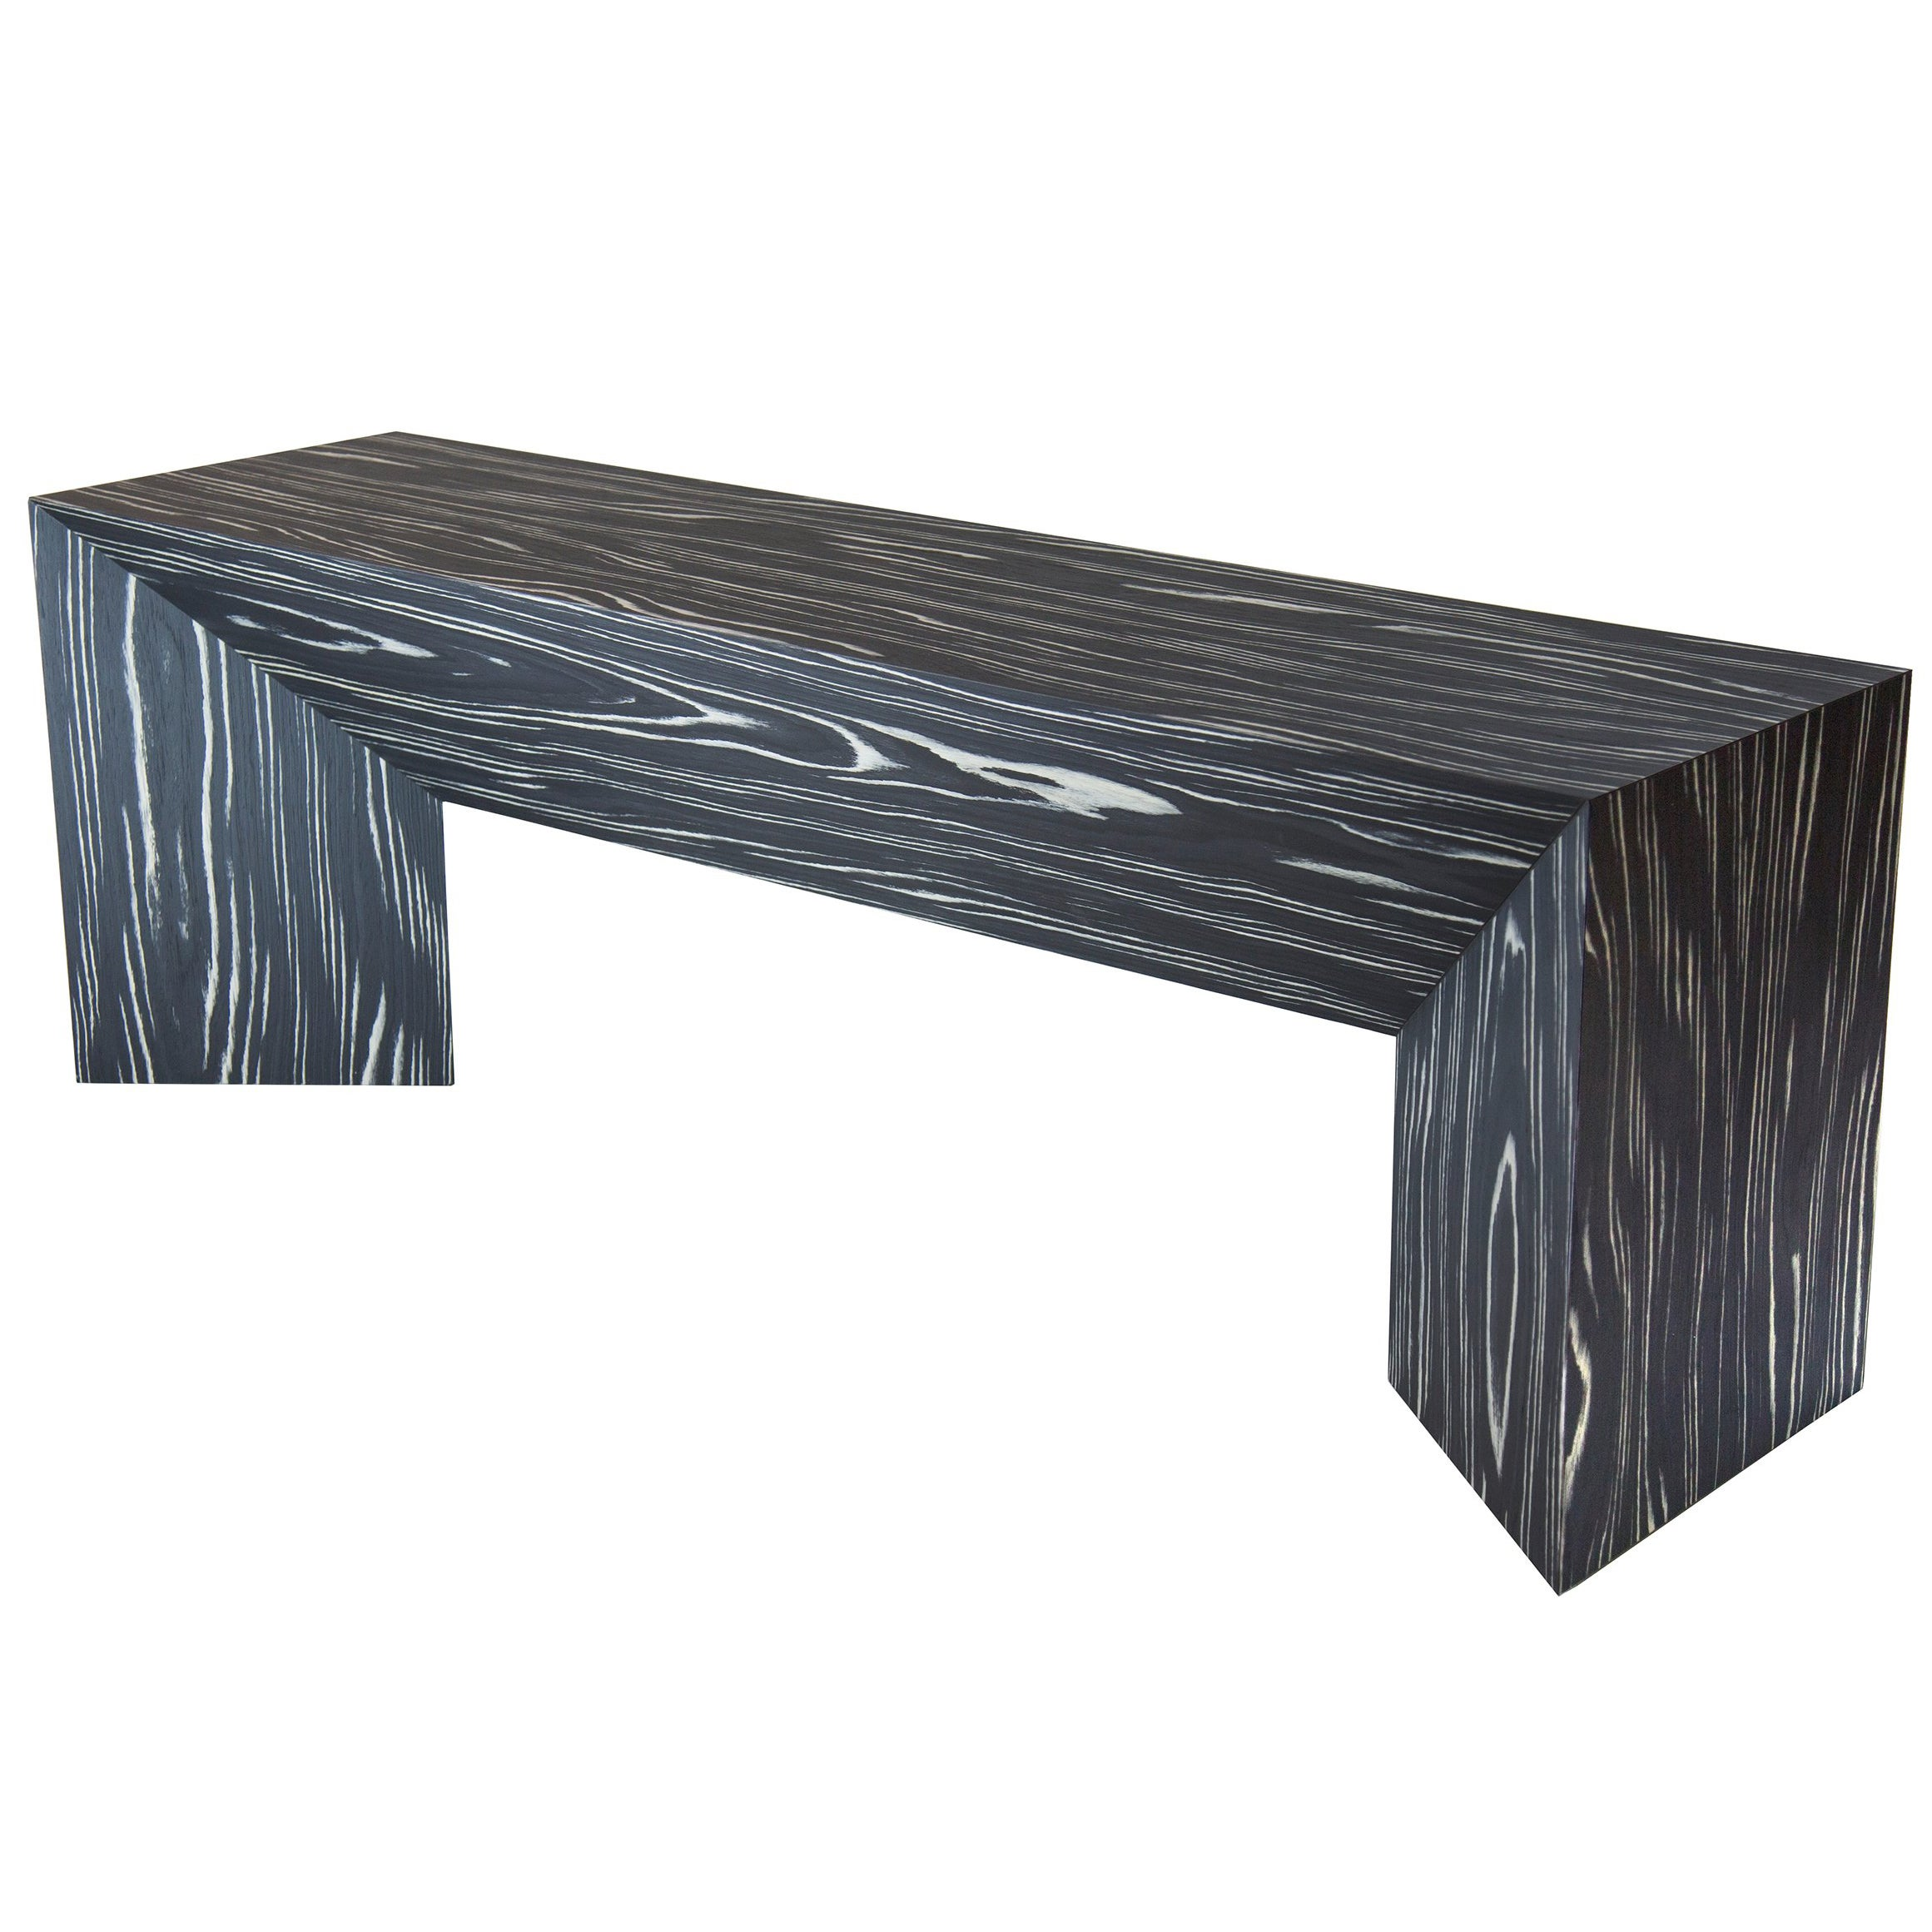 Contemporary Black And White Ecowood Veneer Fold Bench For Sale